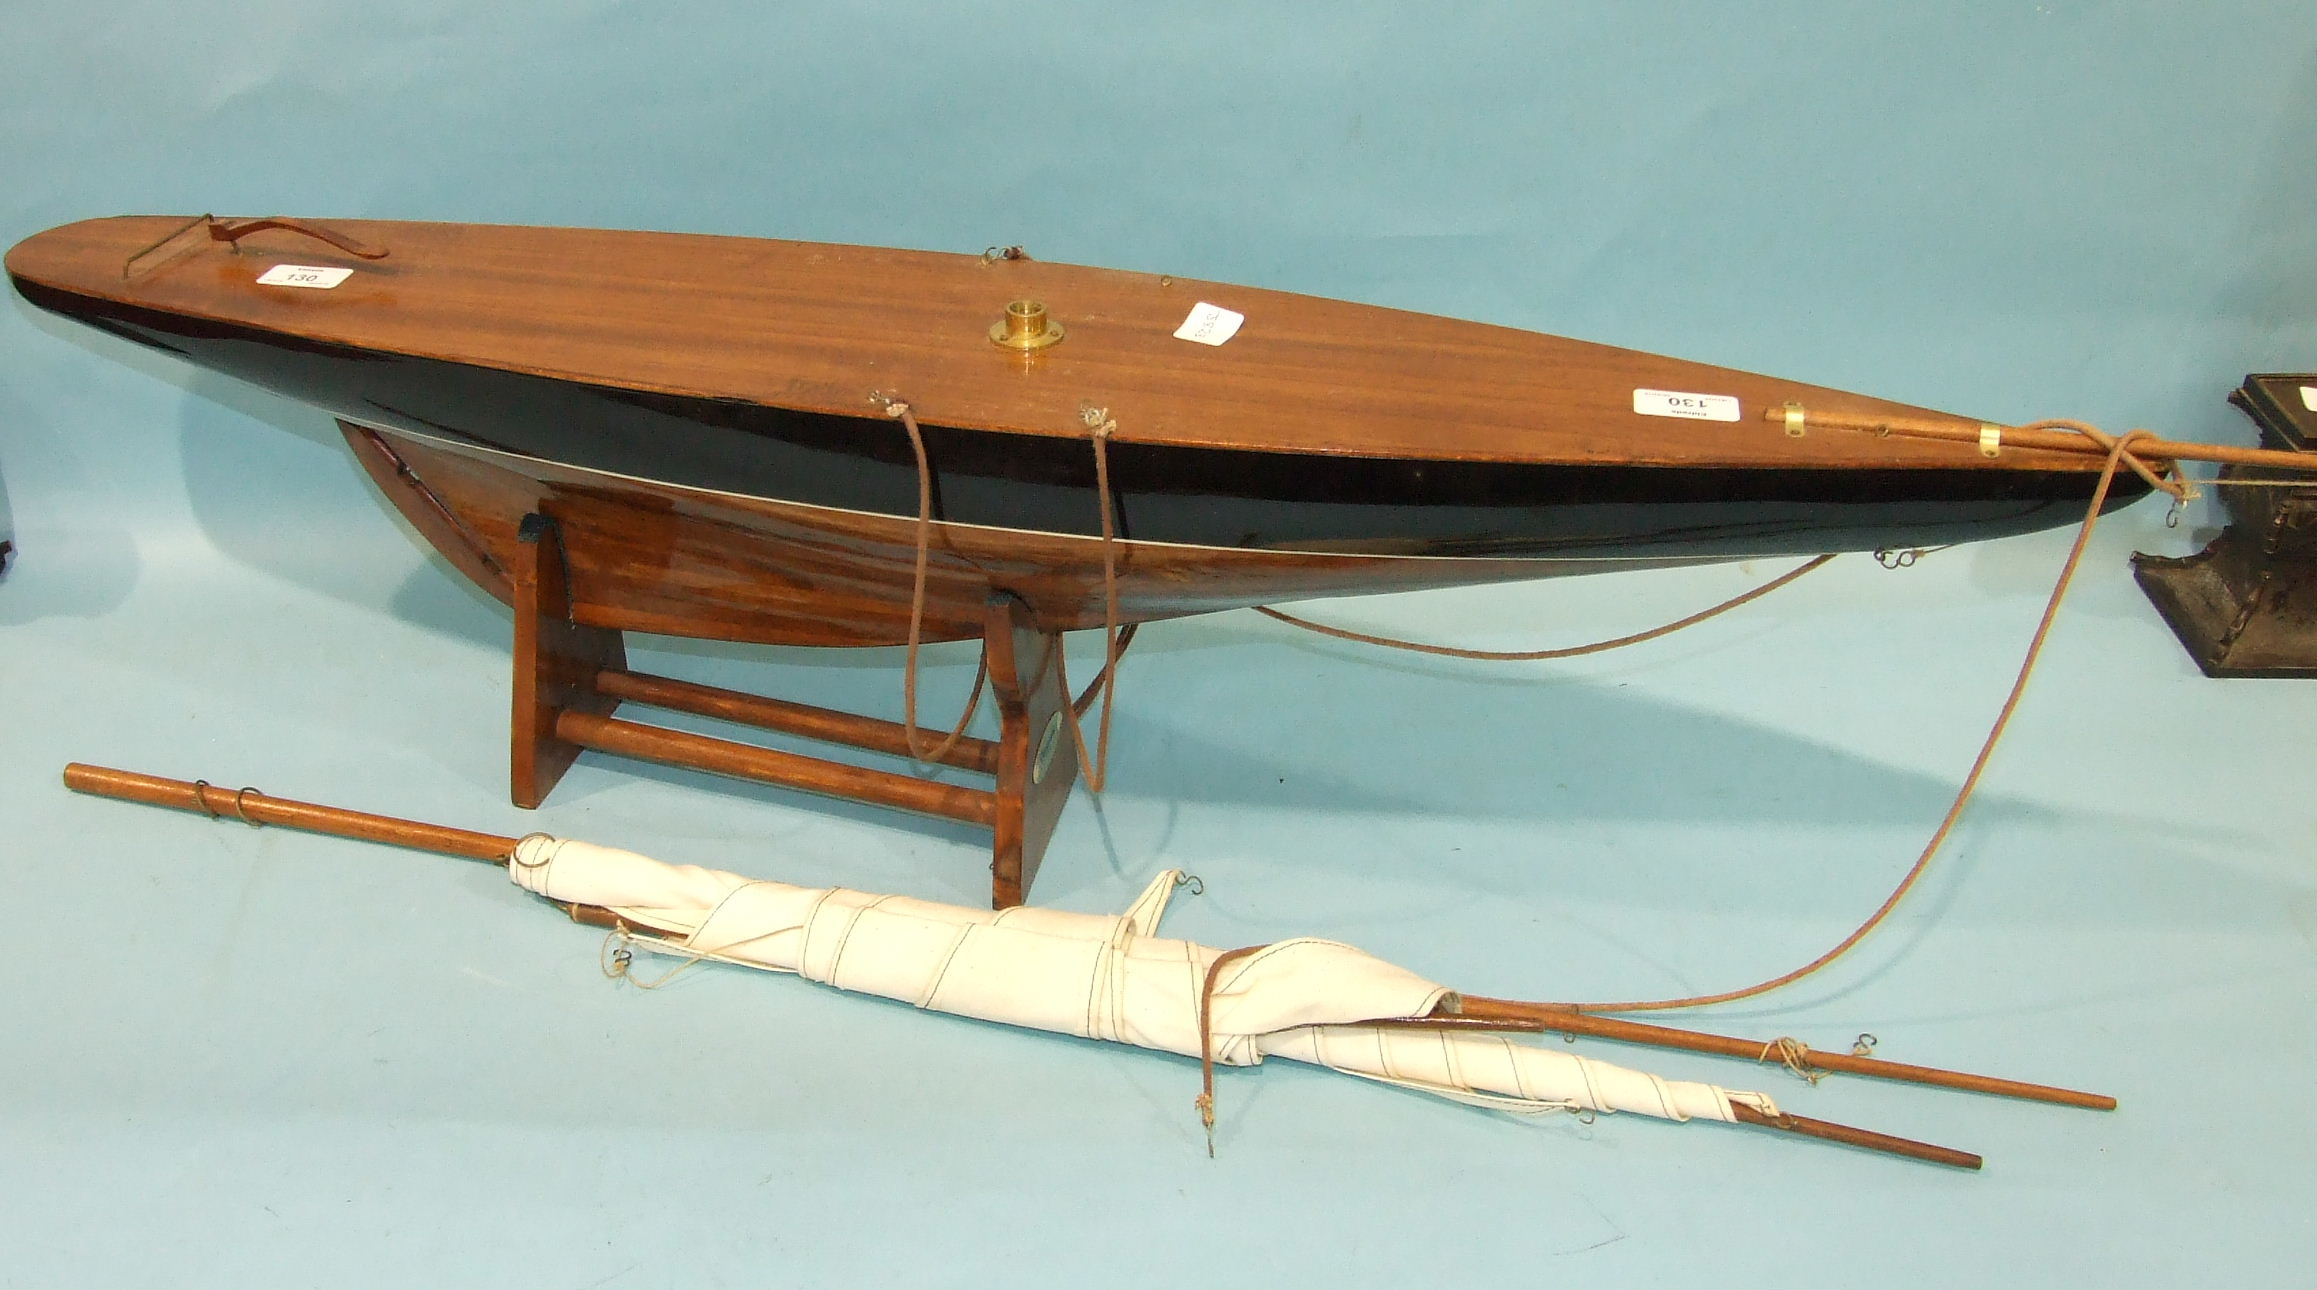 Lot 130 - A modern hardwood pond yacht painted black above the waterline, 100cm long.